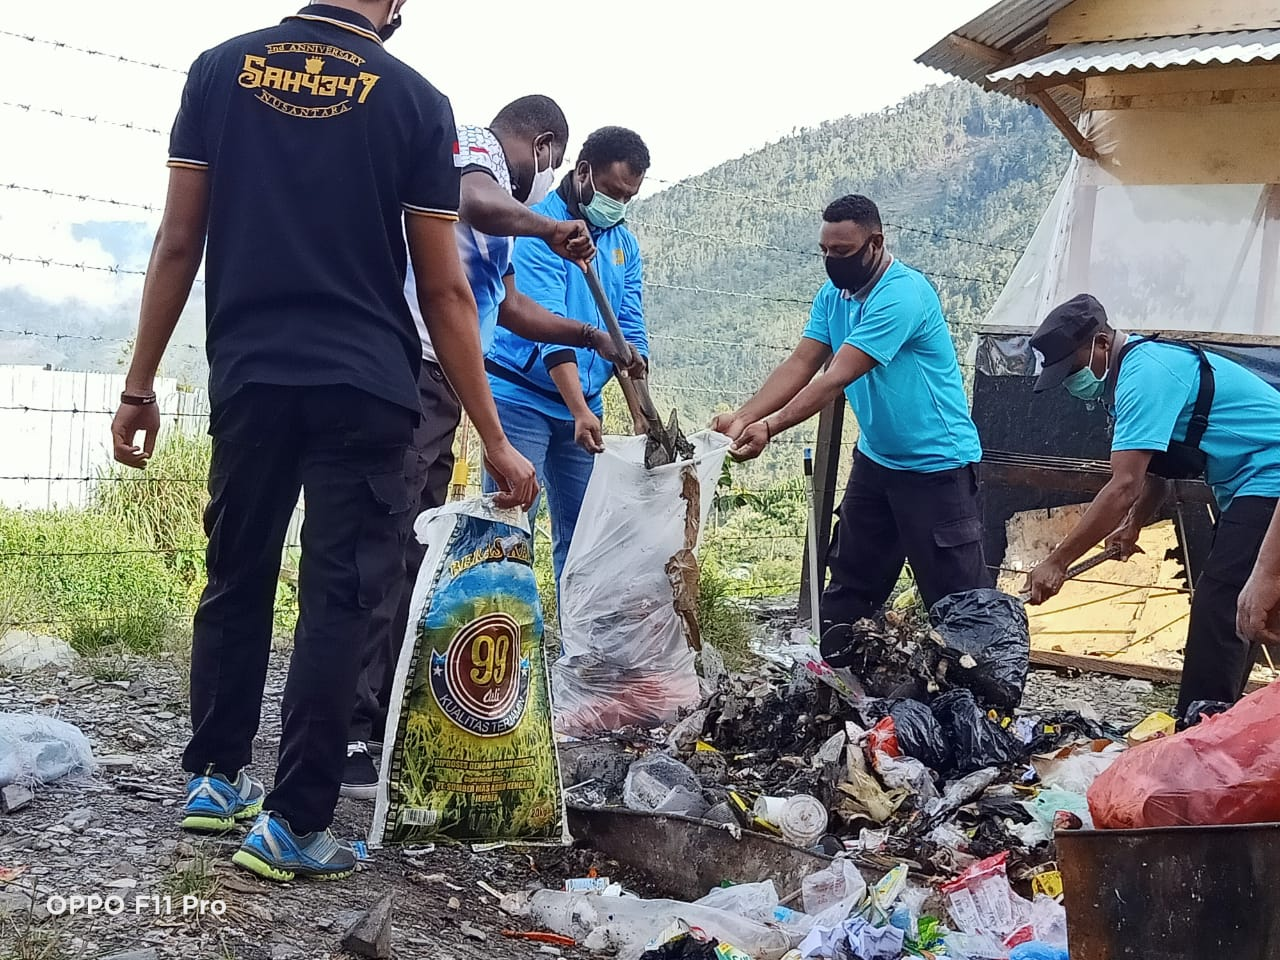 Caring for Environmental Cleanliness, Puncak Jaya Police Carry Out Community Service Around Mako - POLRI PRIVATE VISION